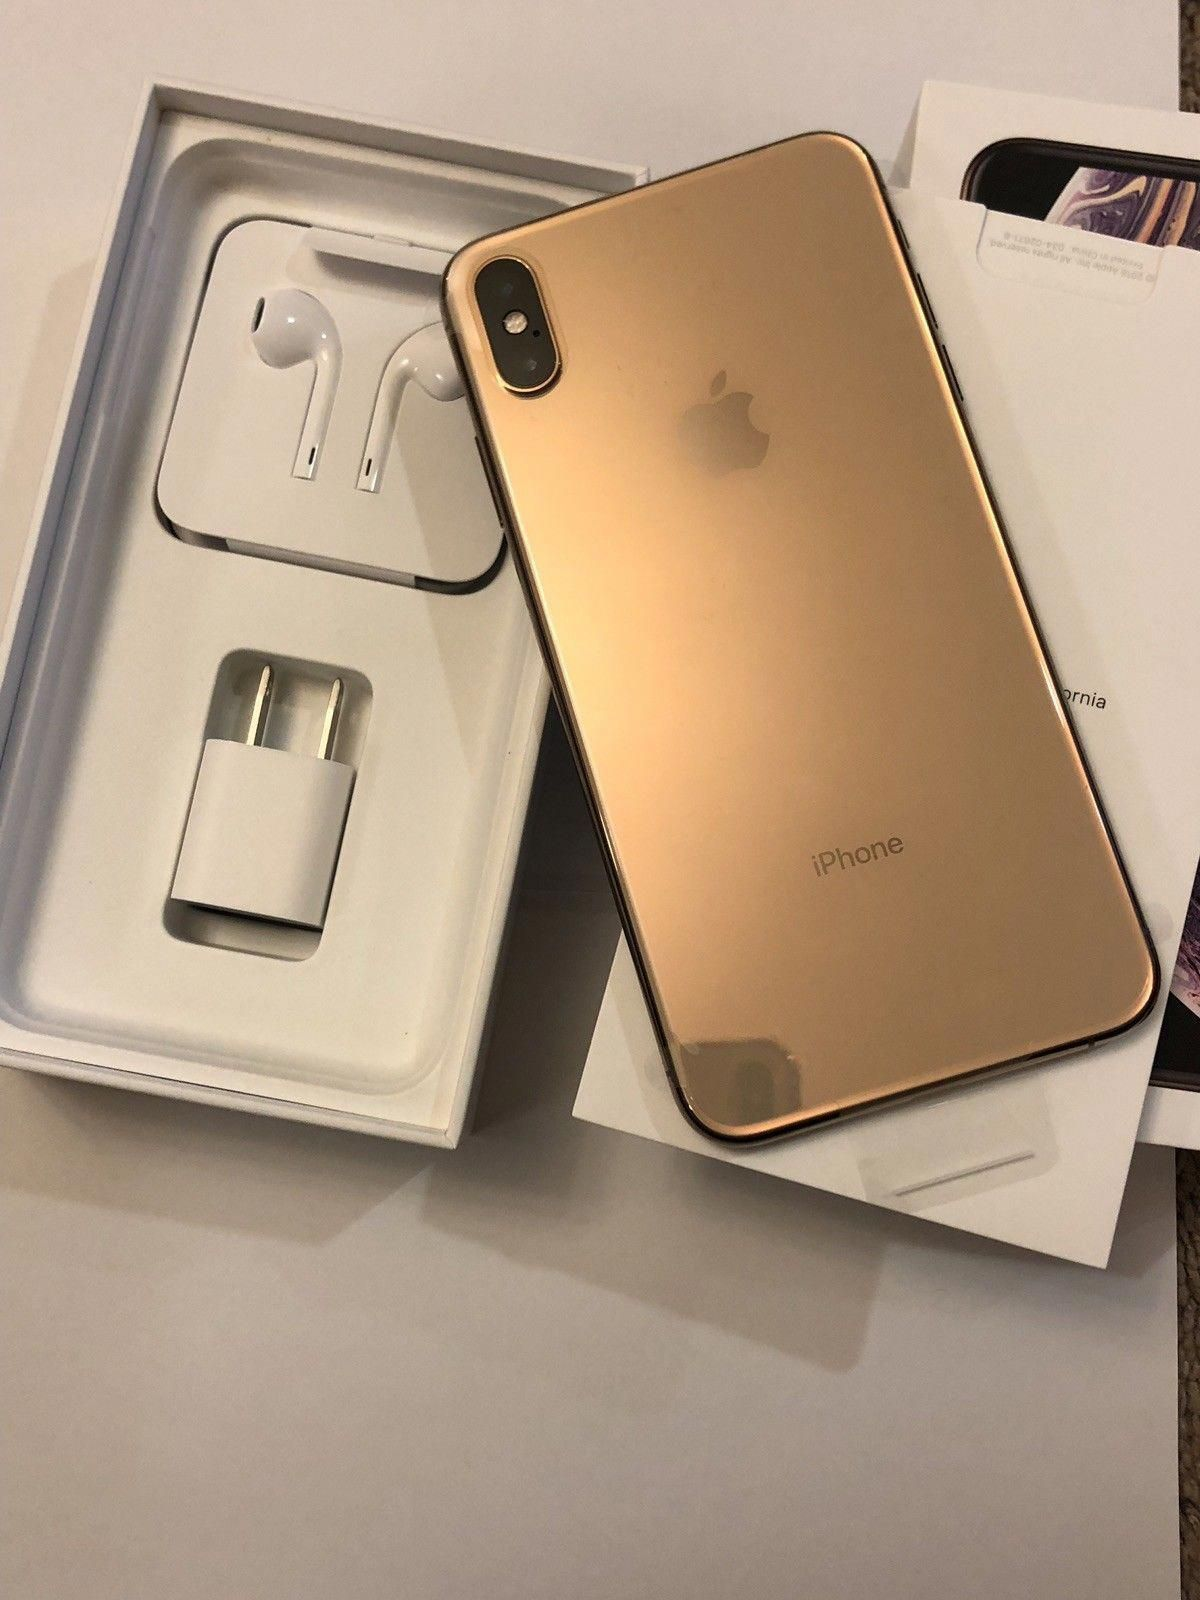 Apple Iphone Xs Max 512gb Gold Verizon A1921 For Sale Free